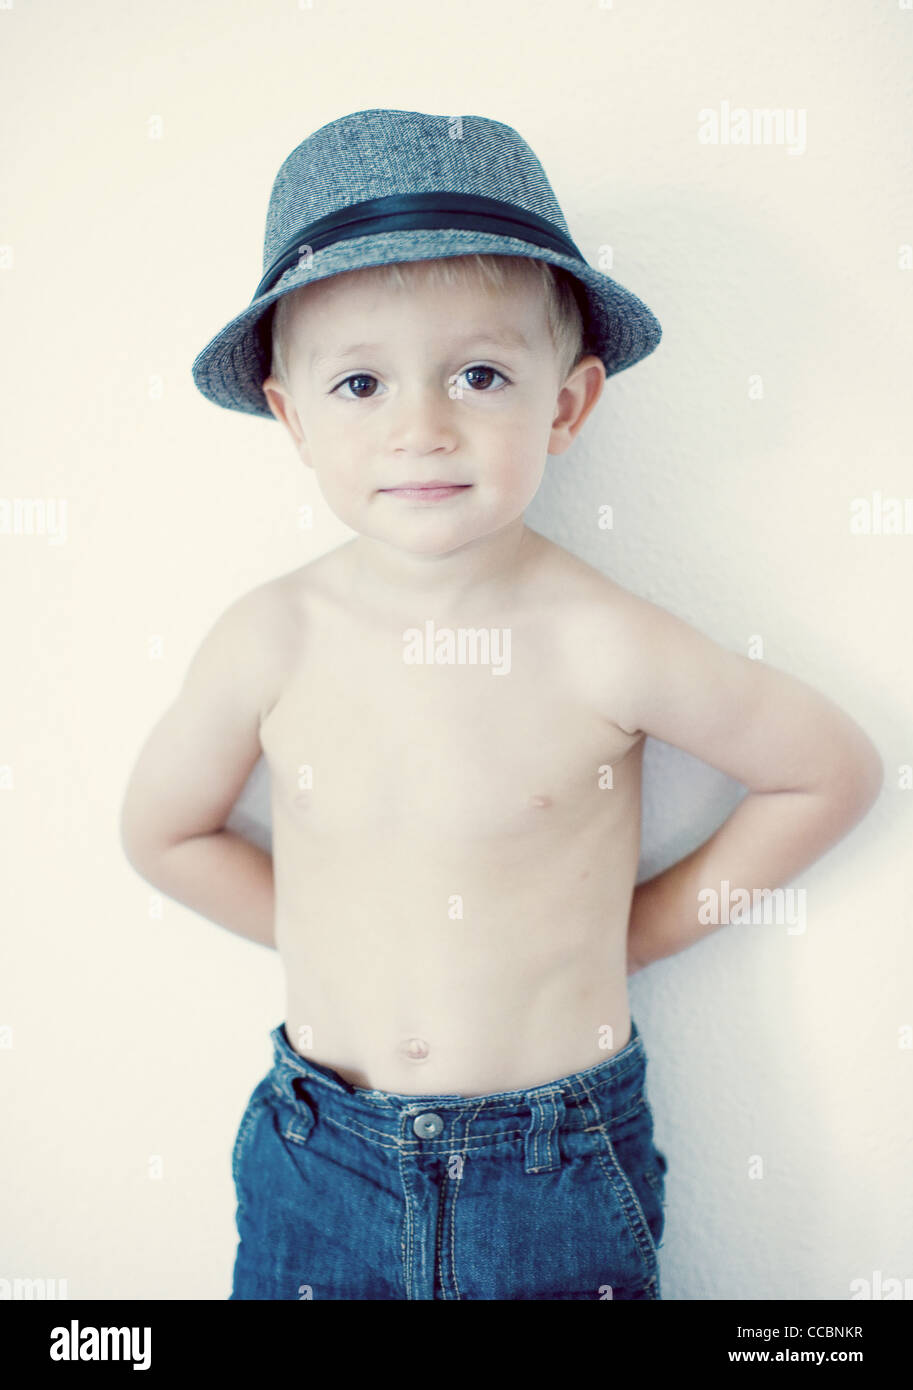 nude toddlers Semi-naked toddler, portrait